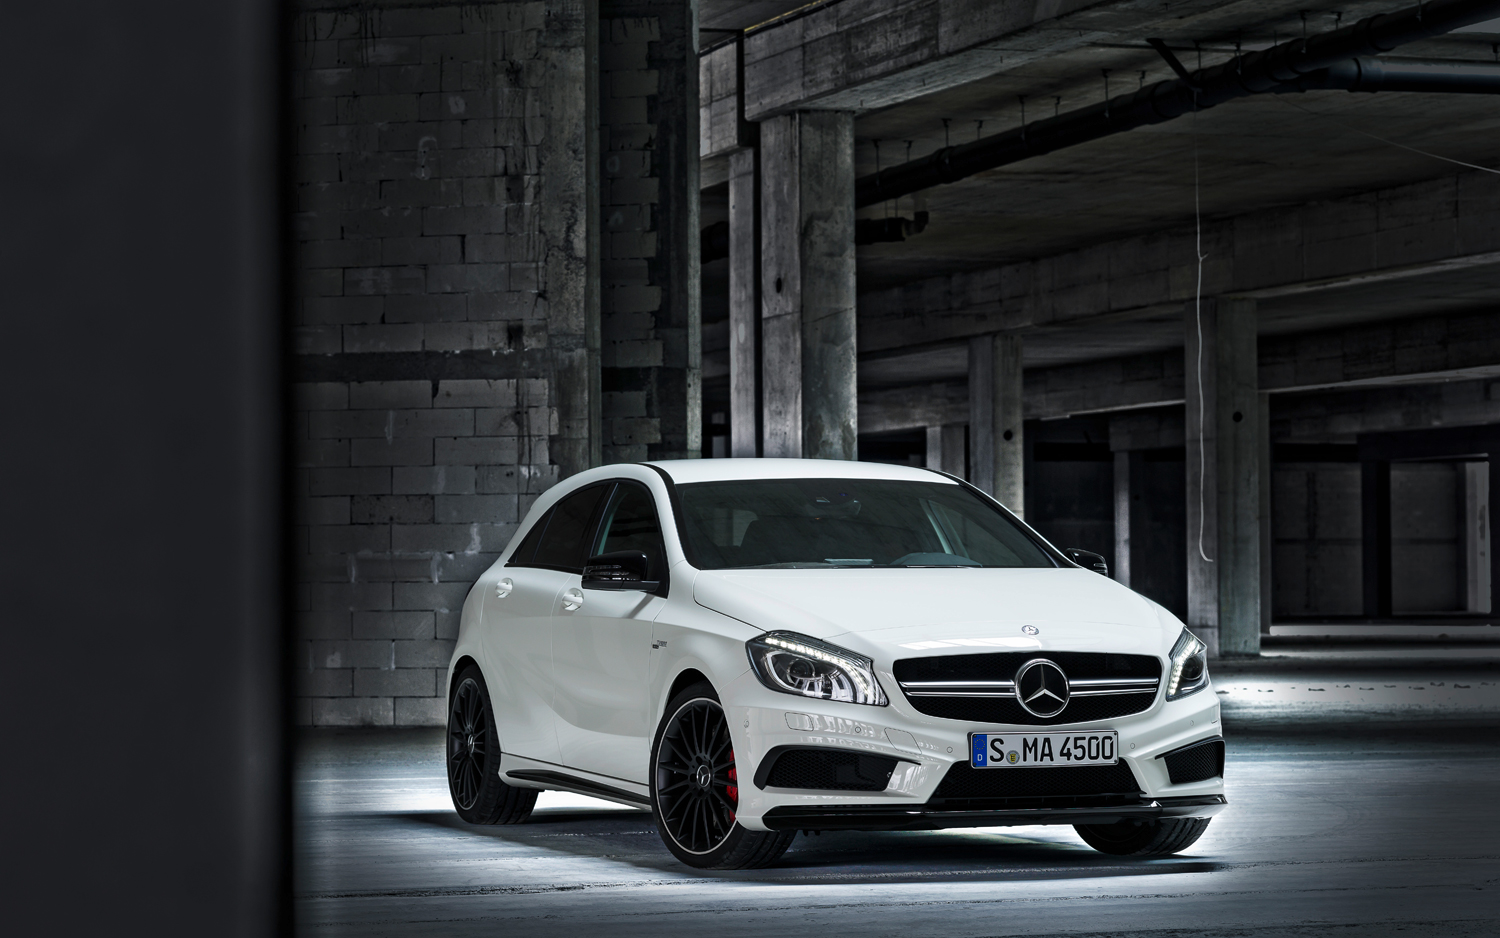 2014 Mercedes-Benz A45 AMG-3.bp.blogspot.com